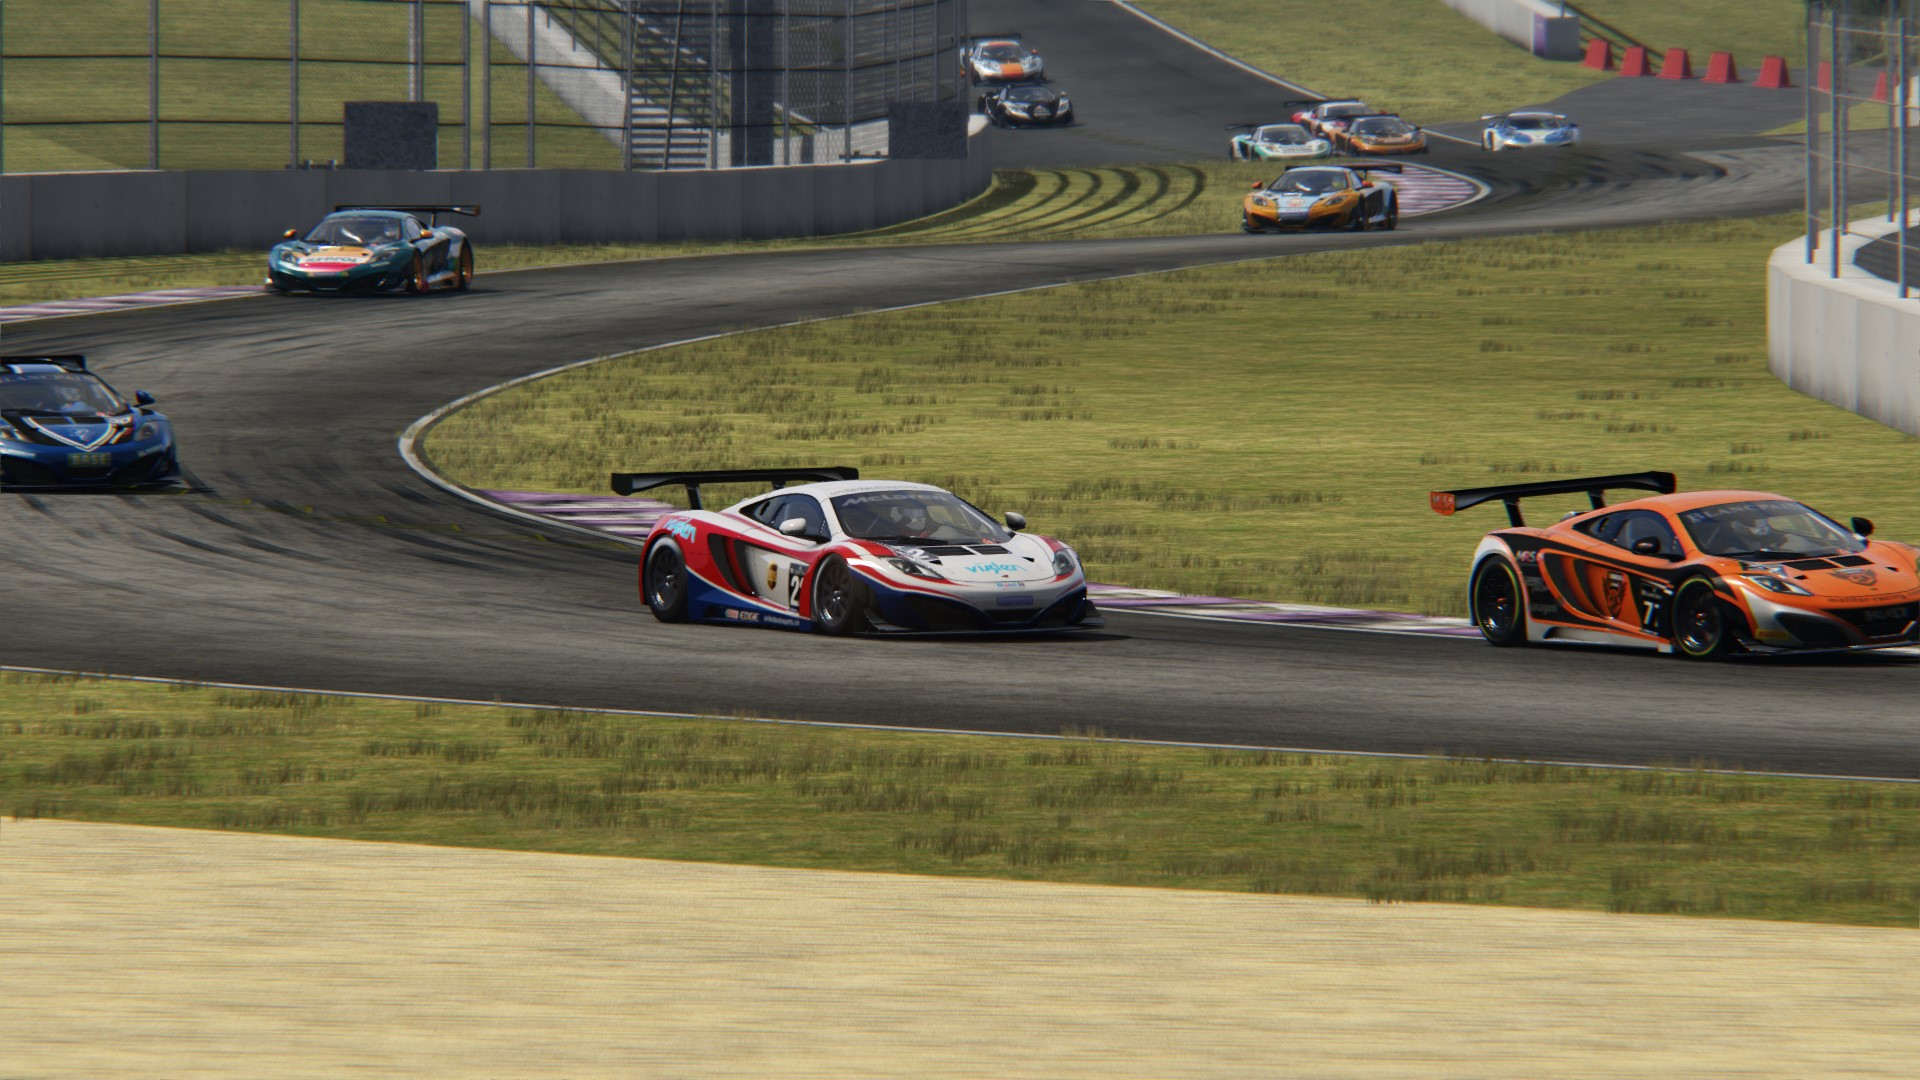 Screenshot_mclaren_mp412c_gt3_toscana_22-5-117-15-27-56.jpg